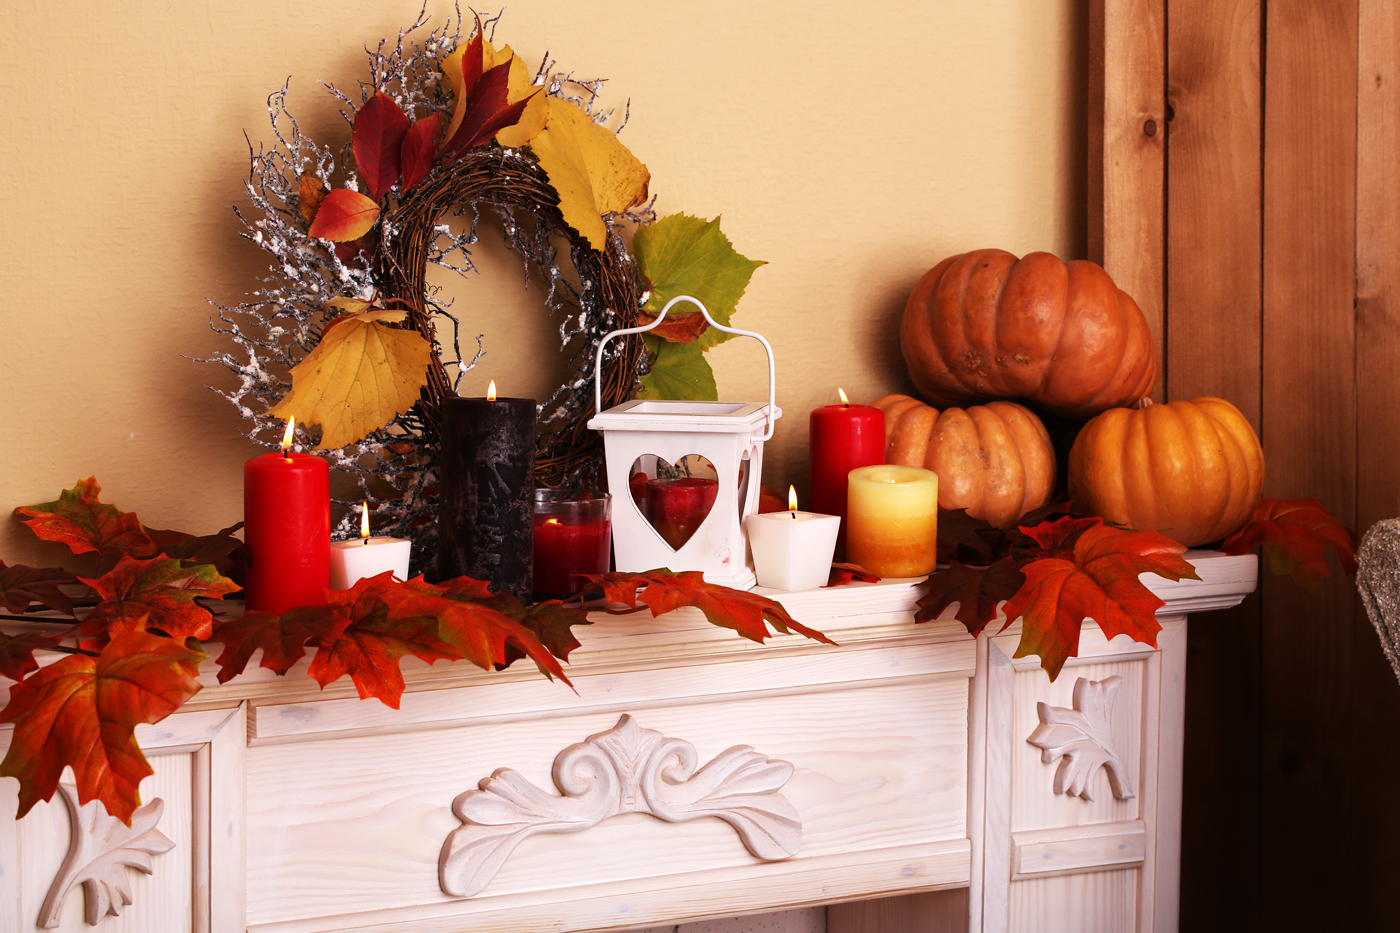 bhgrelife.com - Cozy and Colorful Home Decorations for Fall